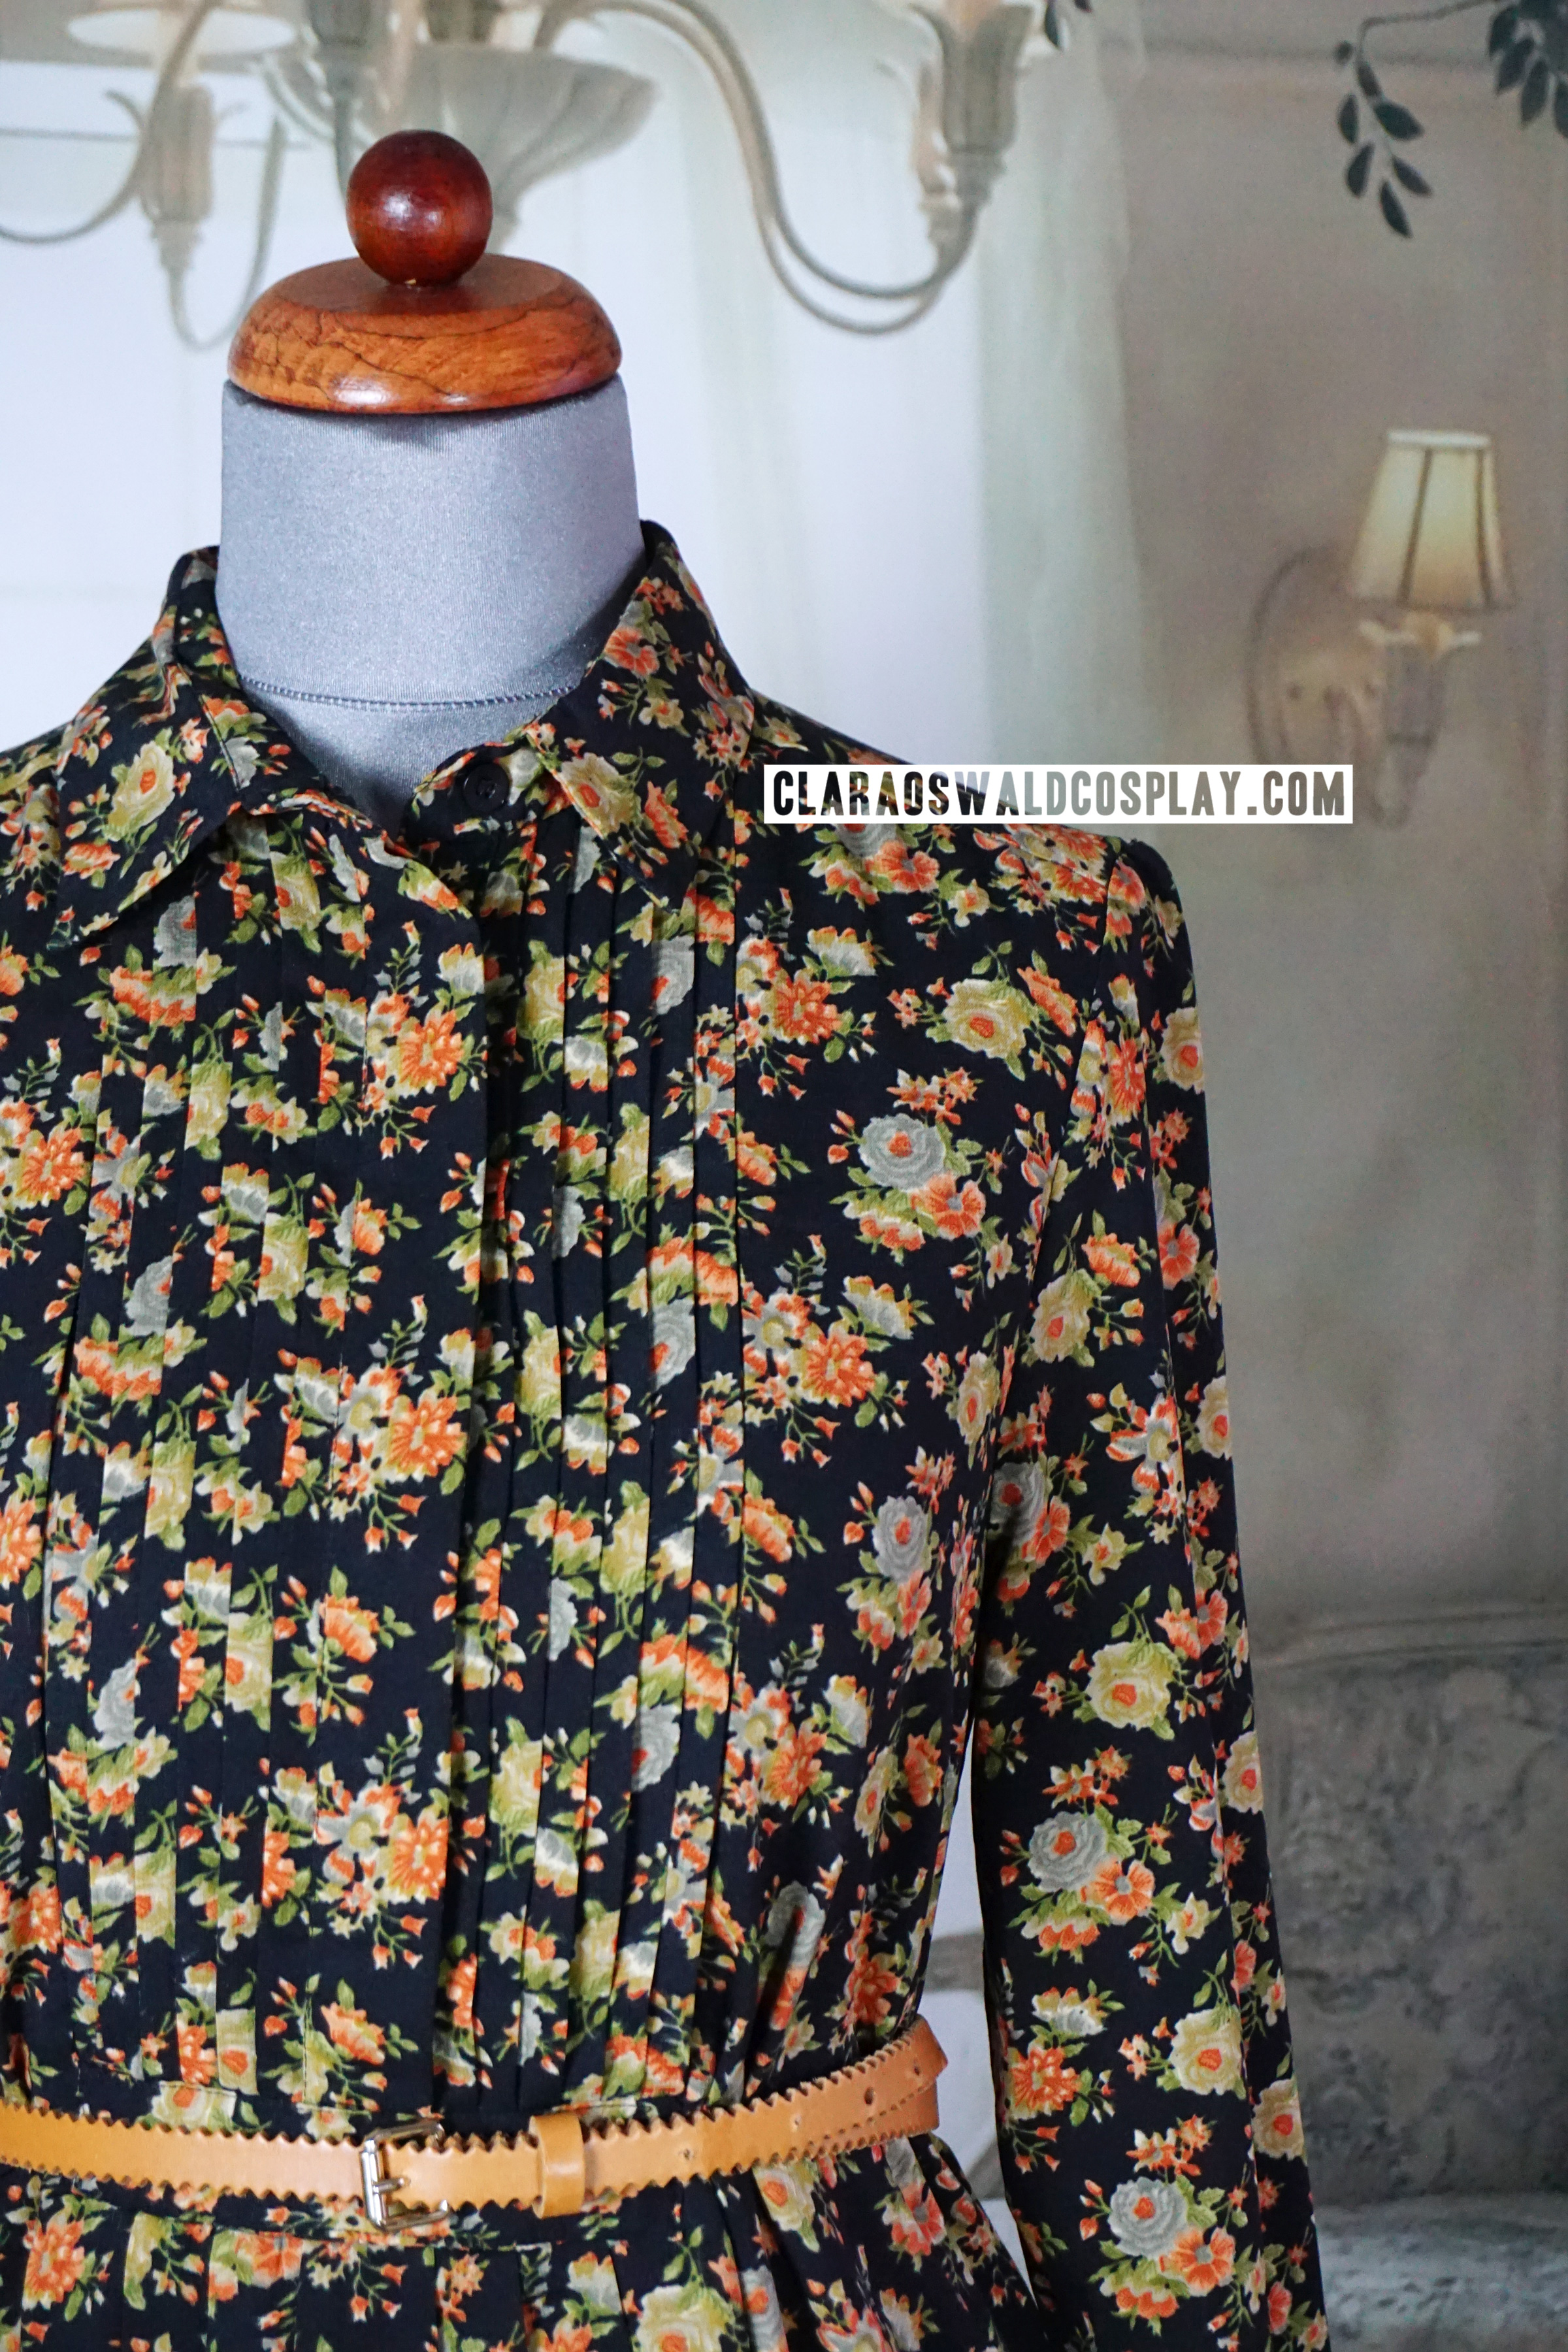 A closer look at the floral pattern of the ASOS Floral Dress